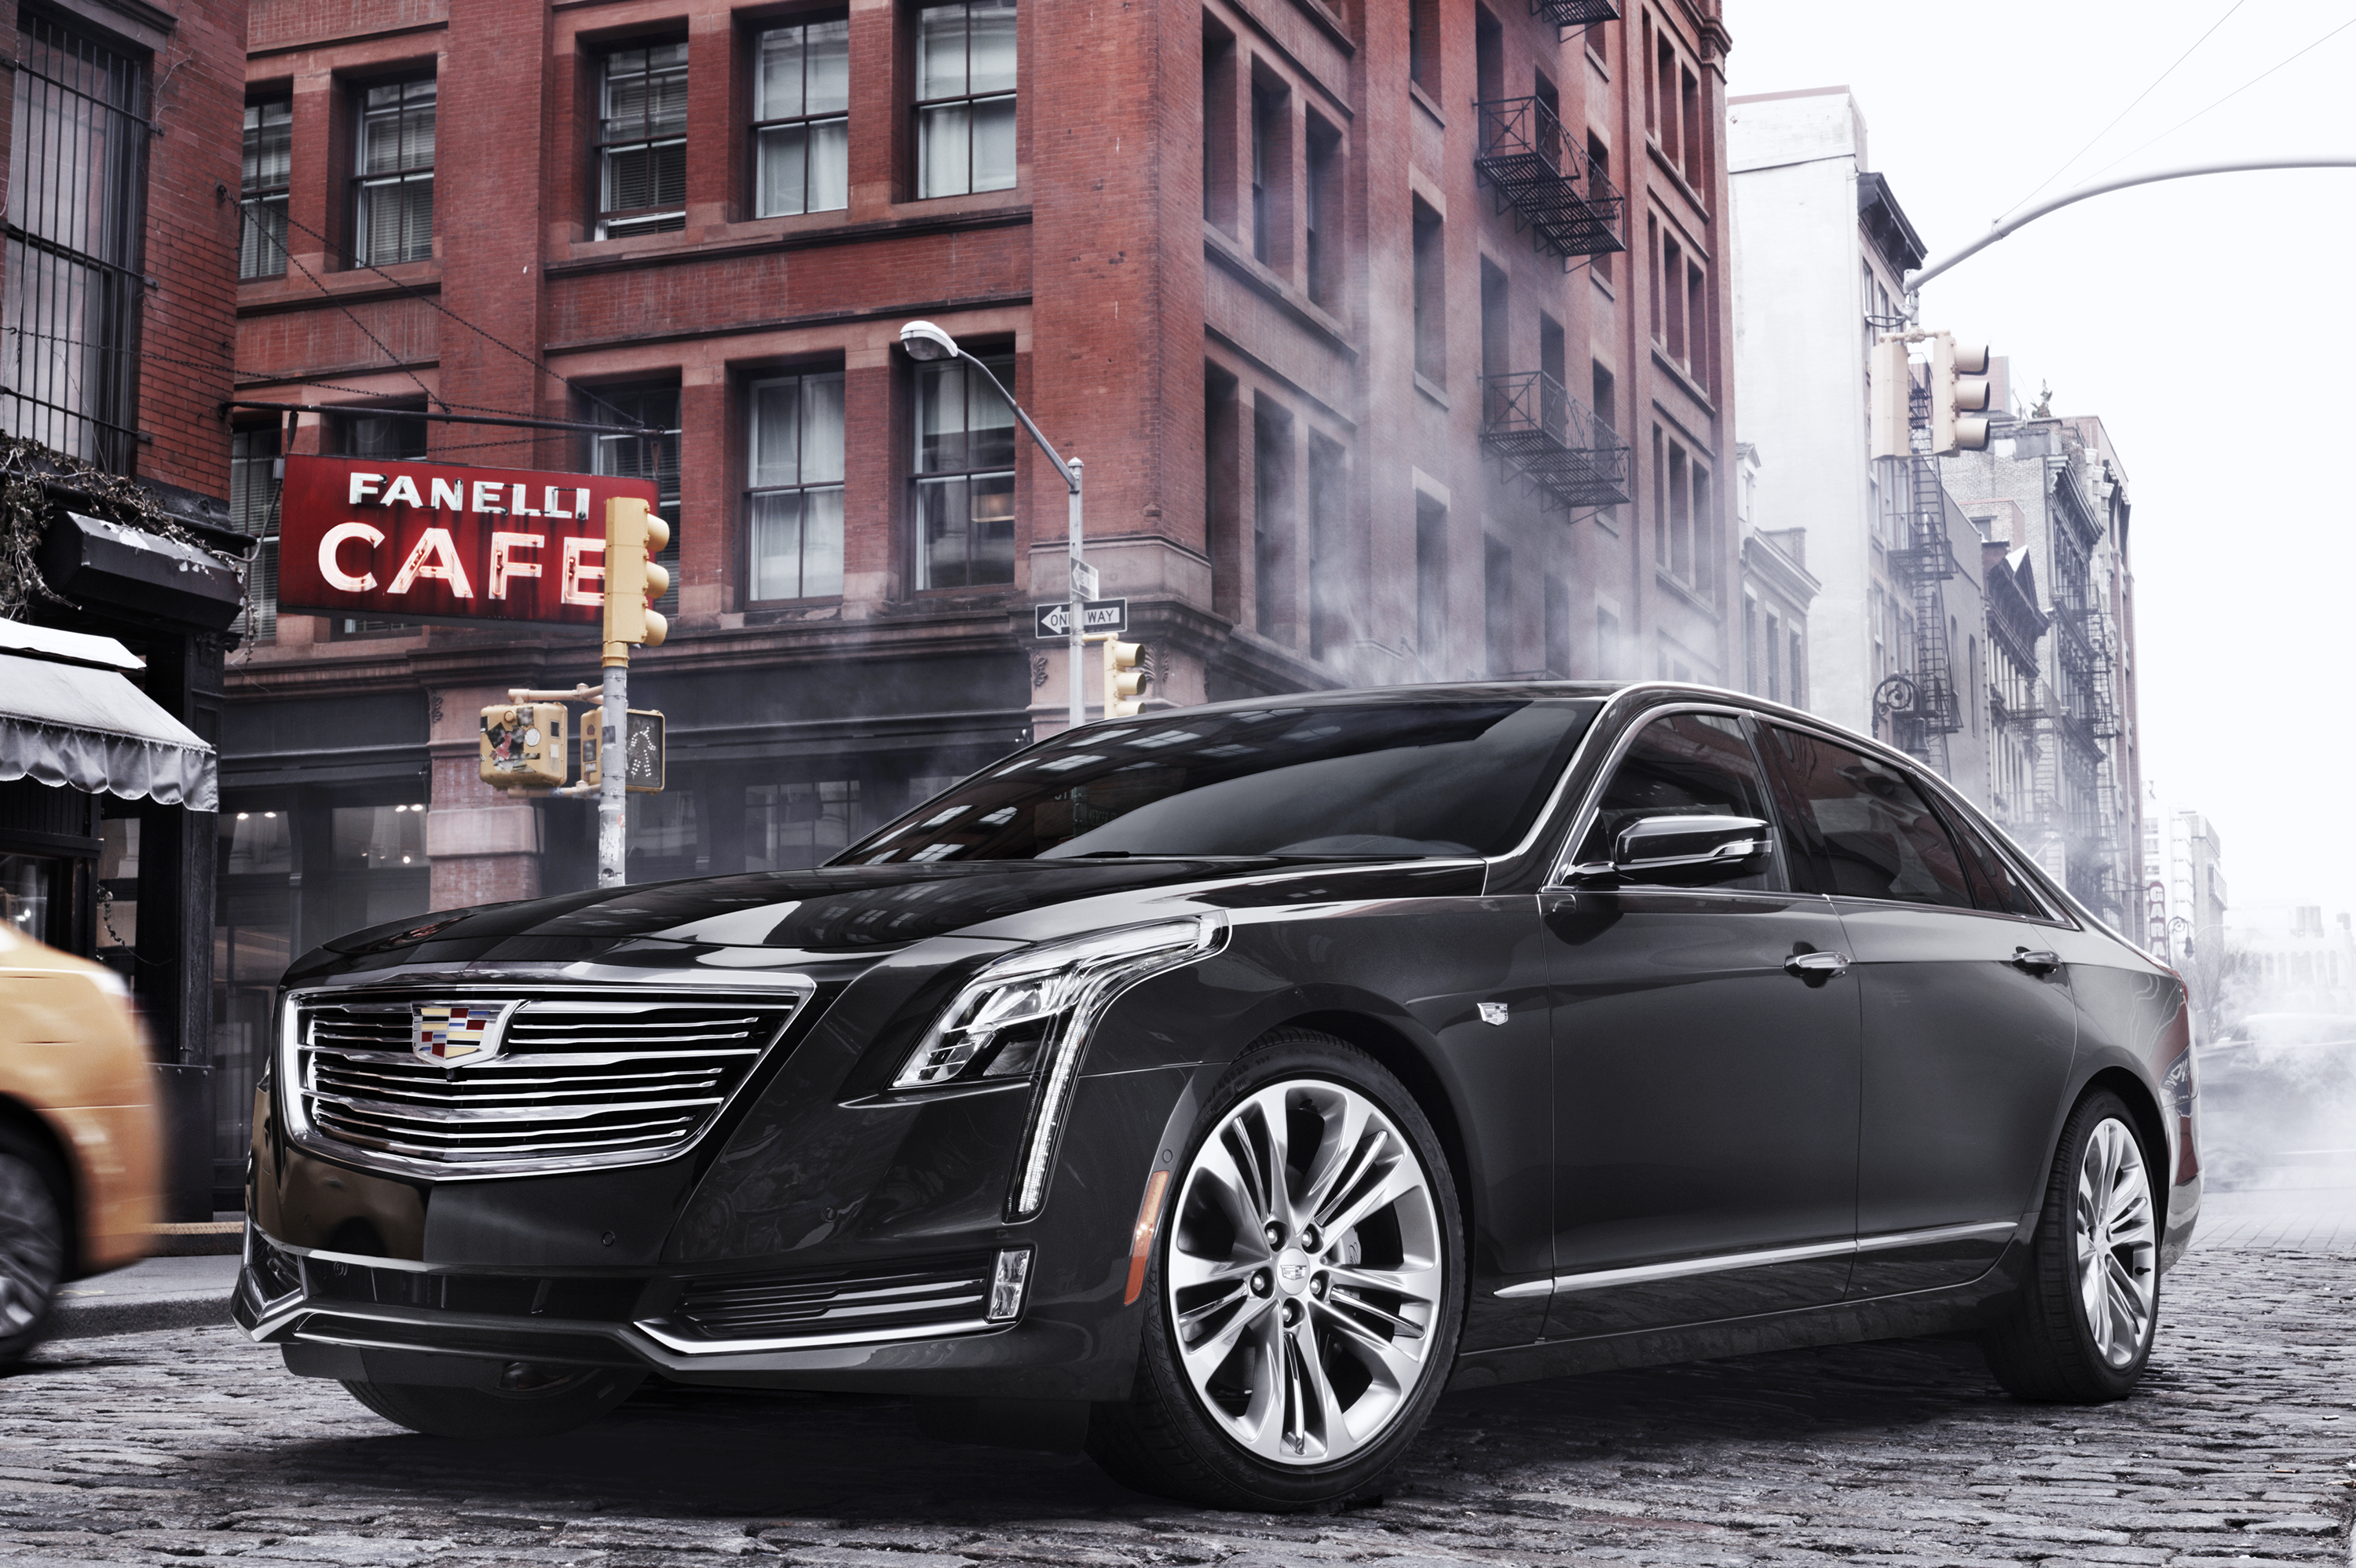 Mercedes Of Akron >> 2016 Cadillac CT6 Begins Production in January, Pricing ...